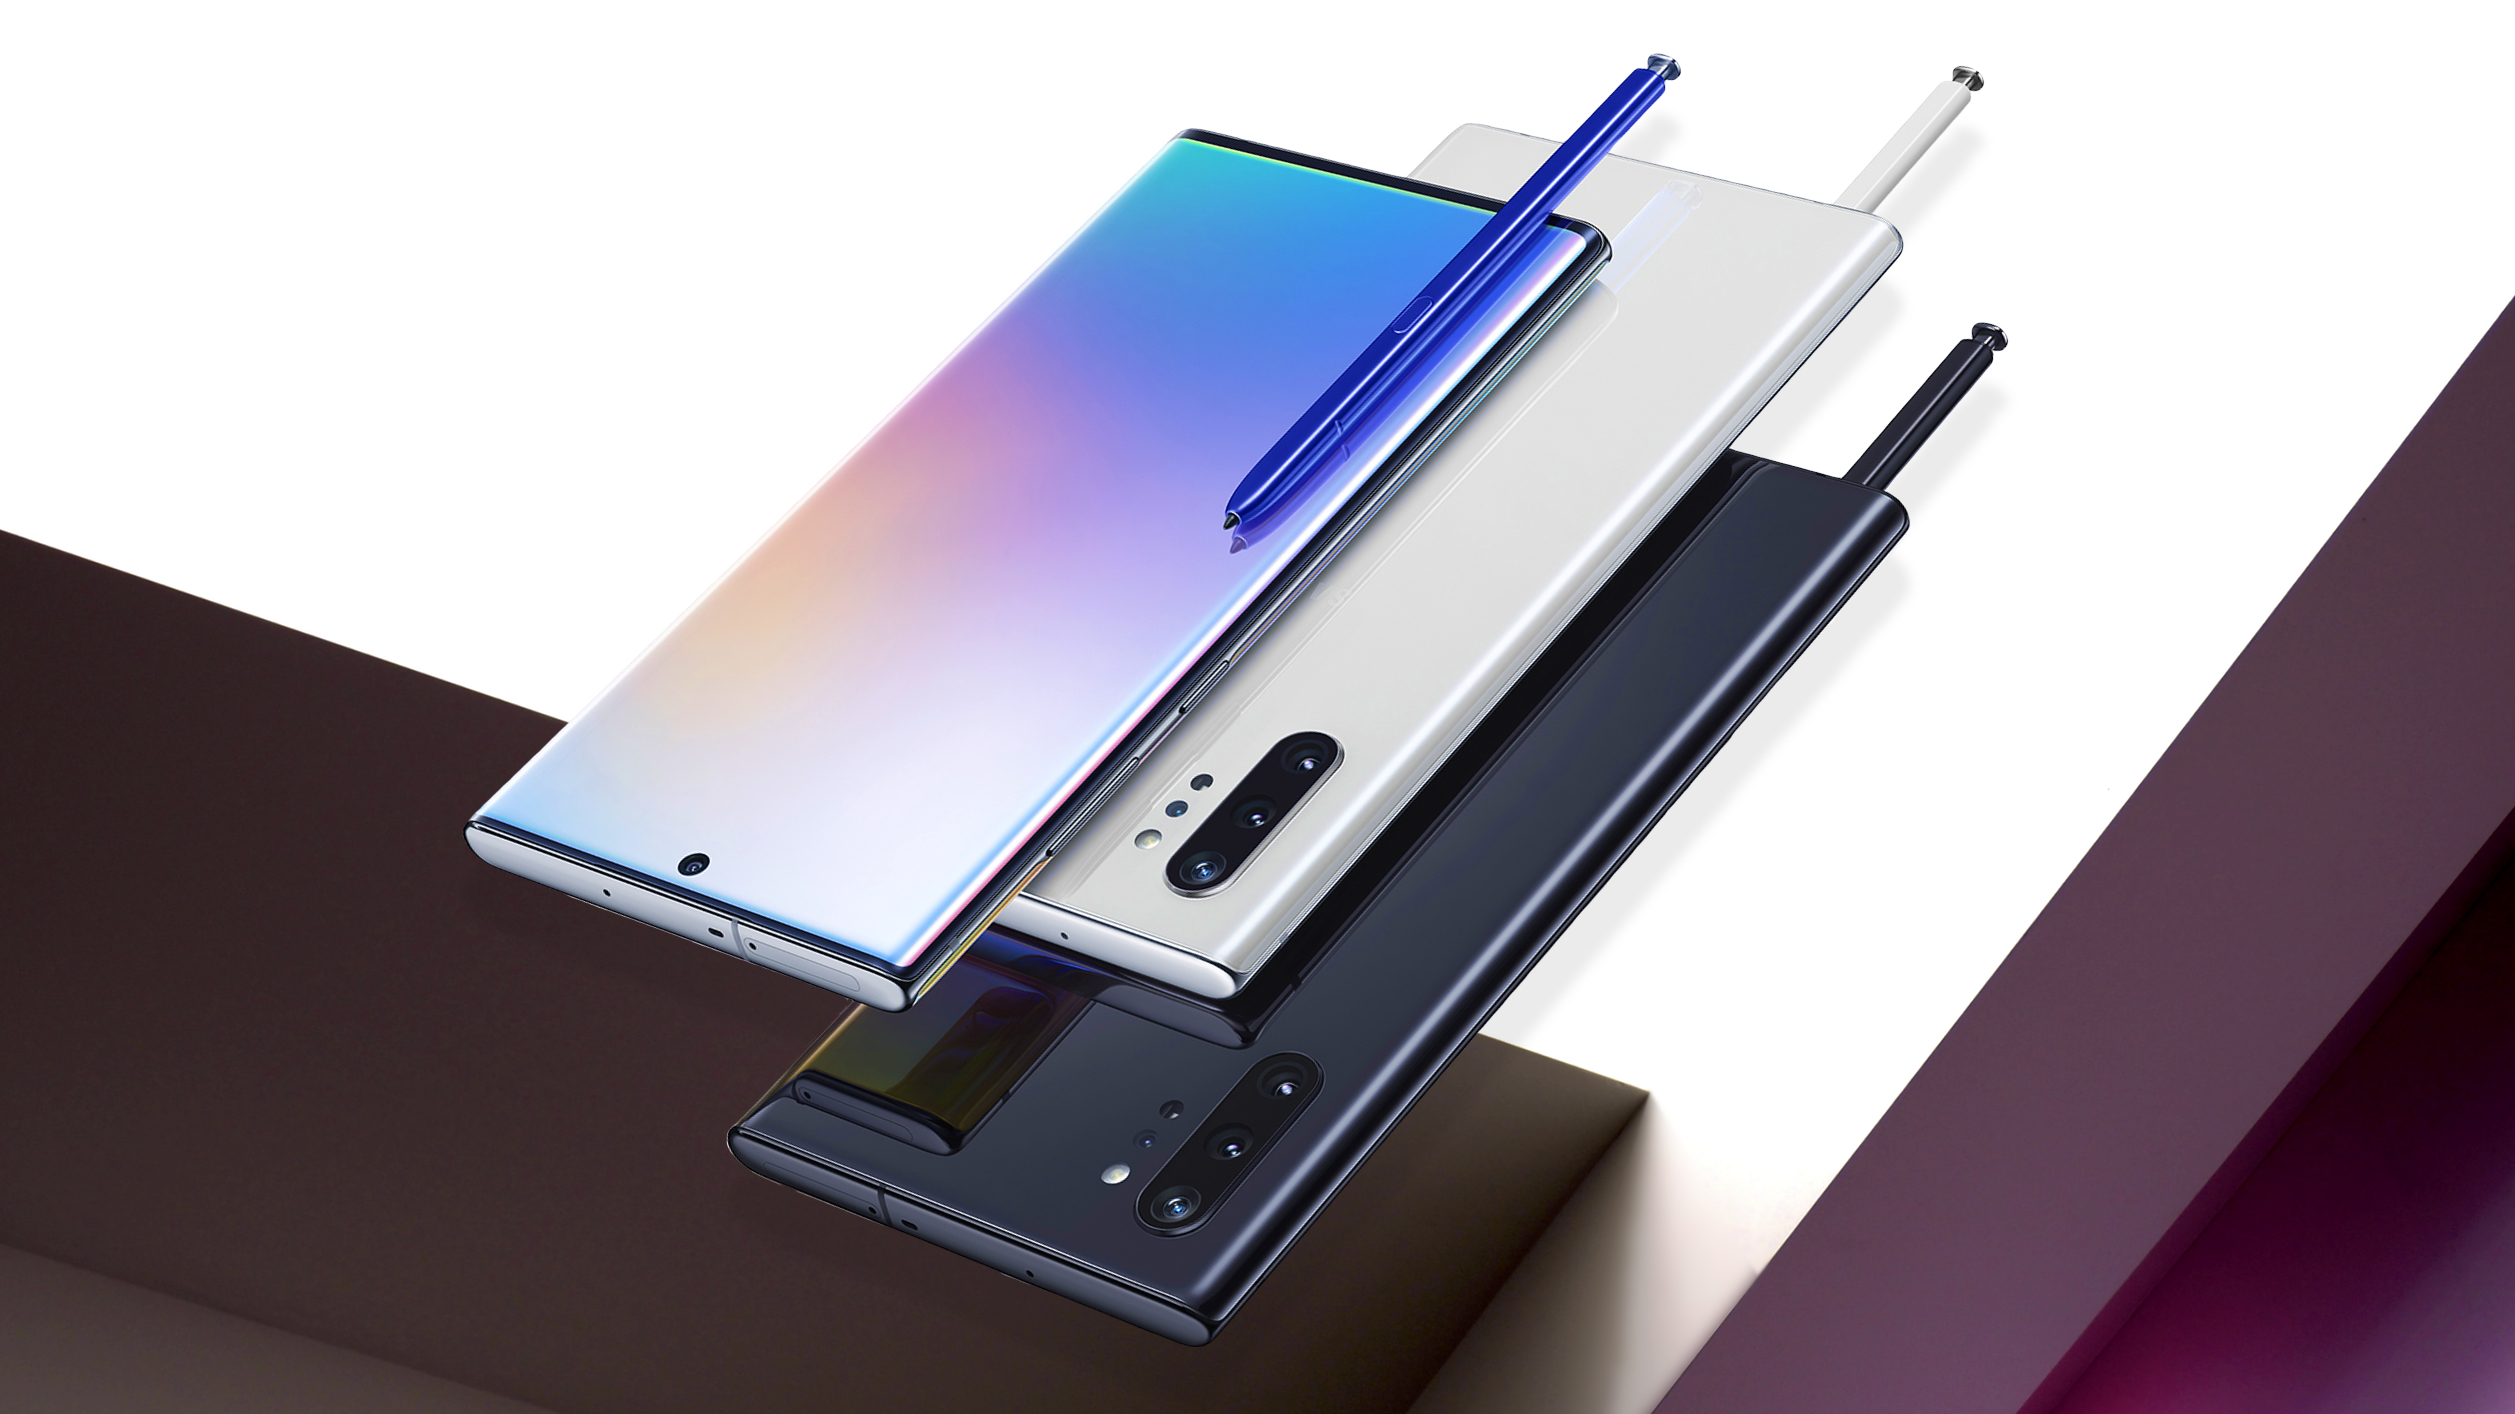 Samsung Galaxy Note 20 Design and Display